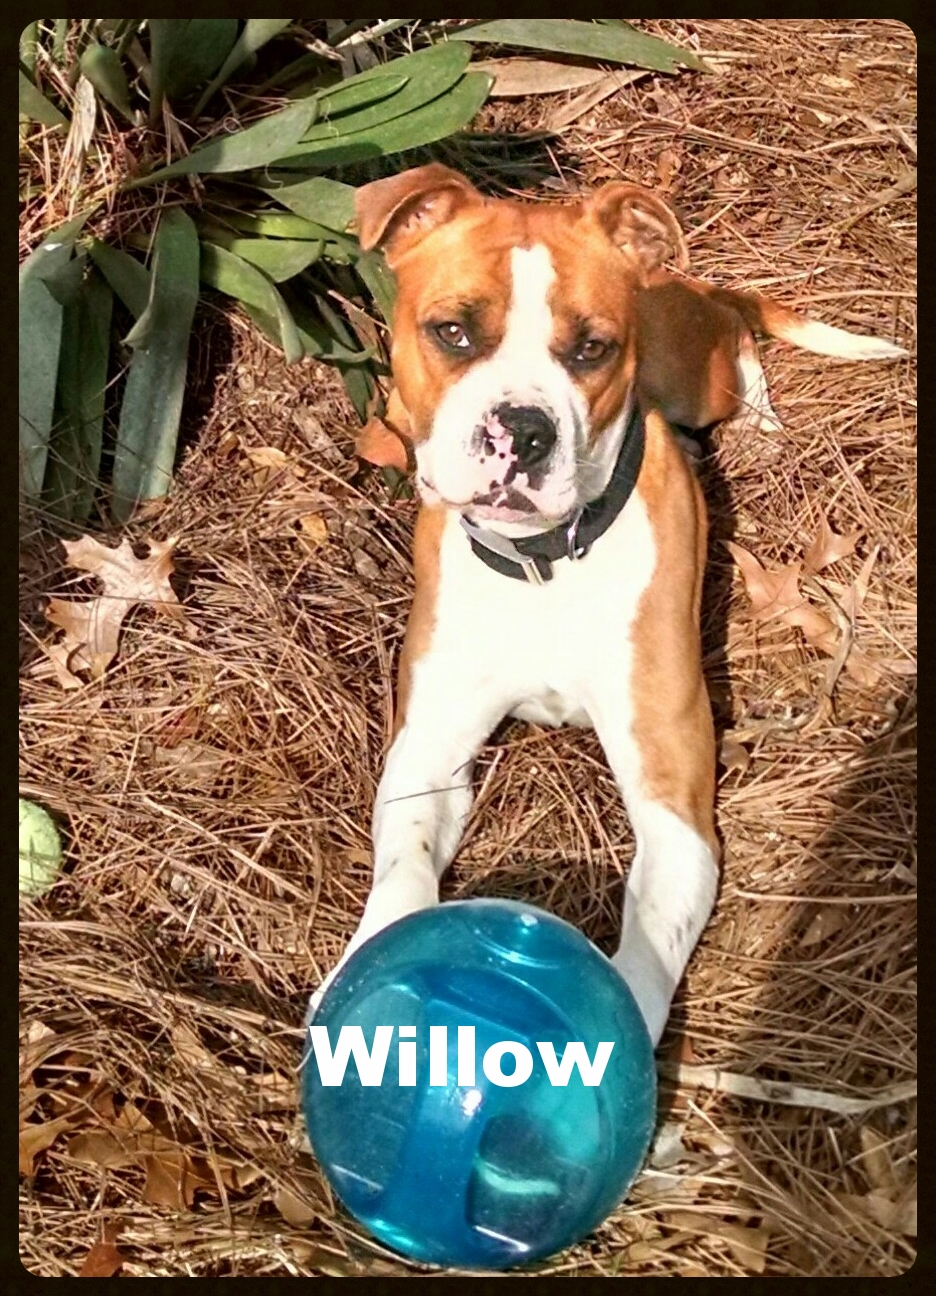 willow new 8.jpg